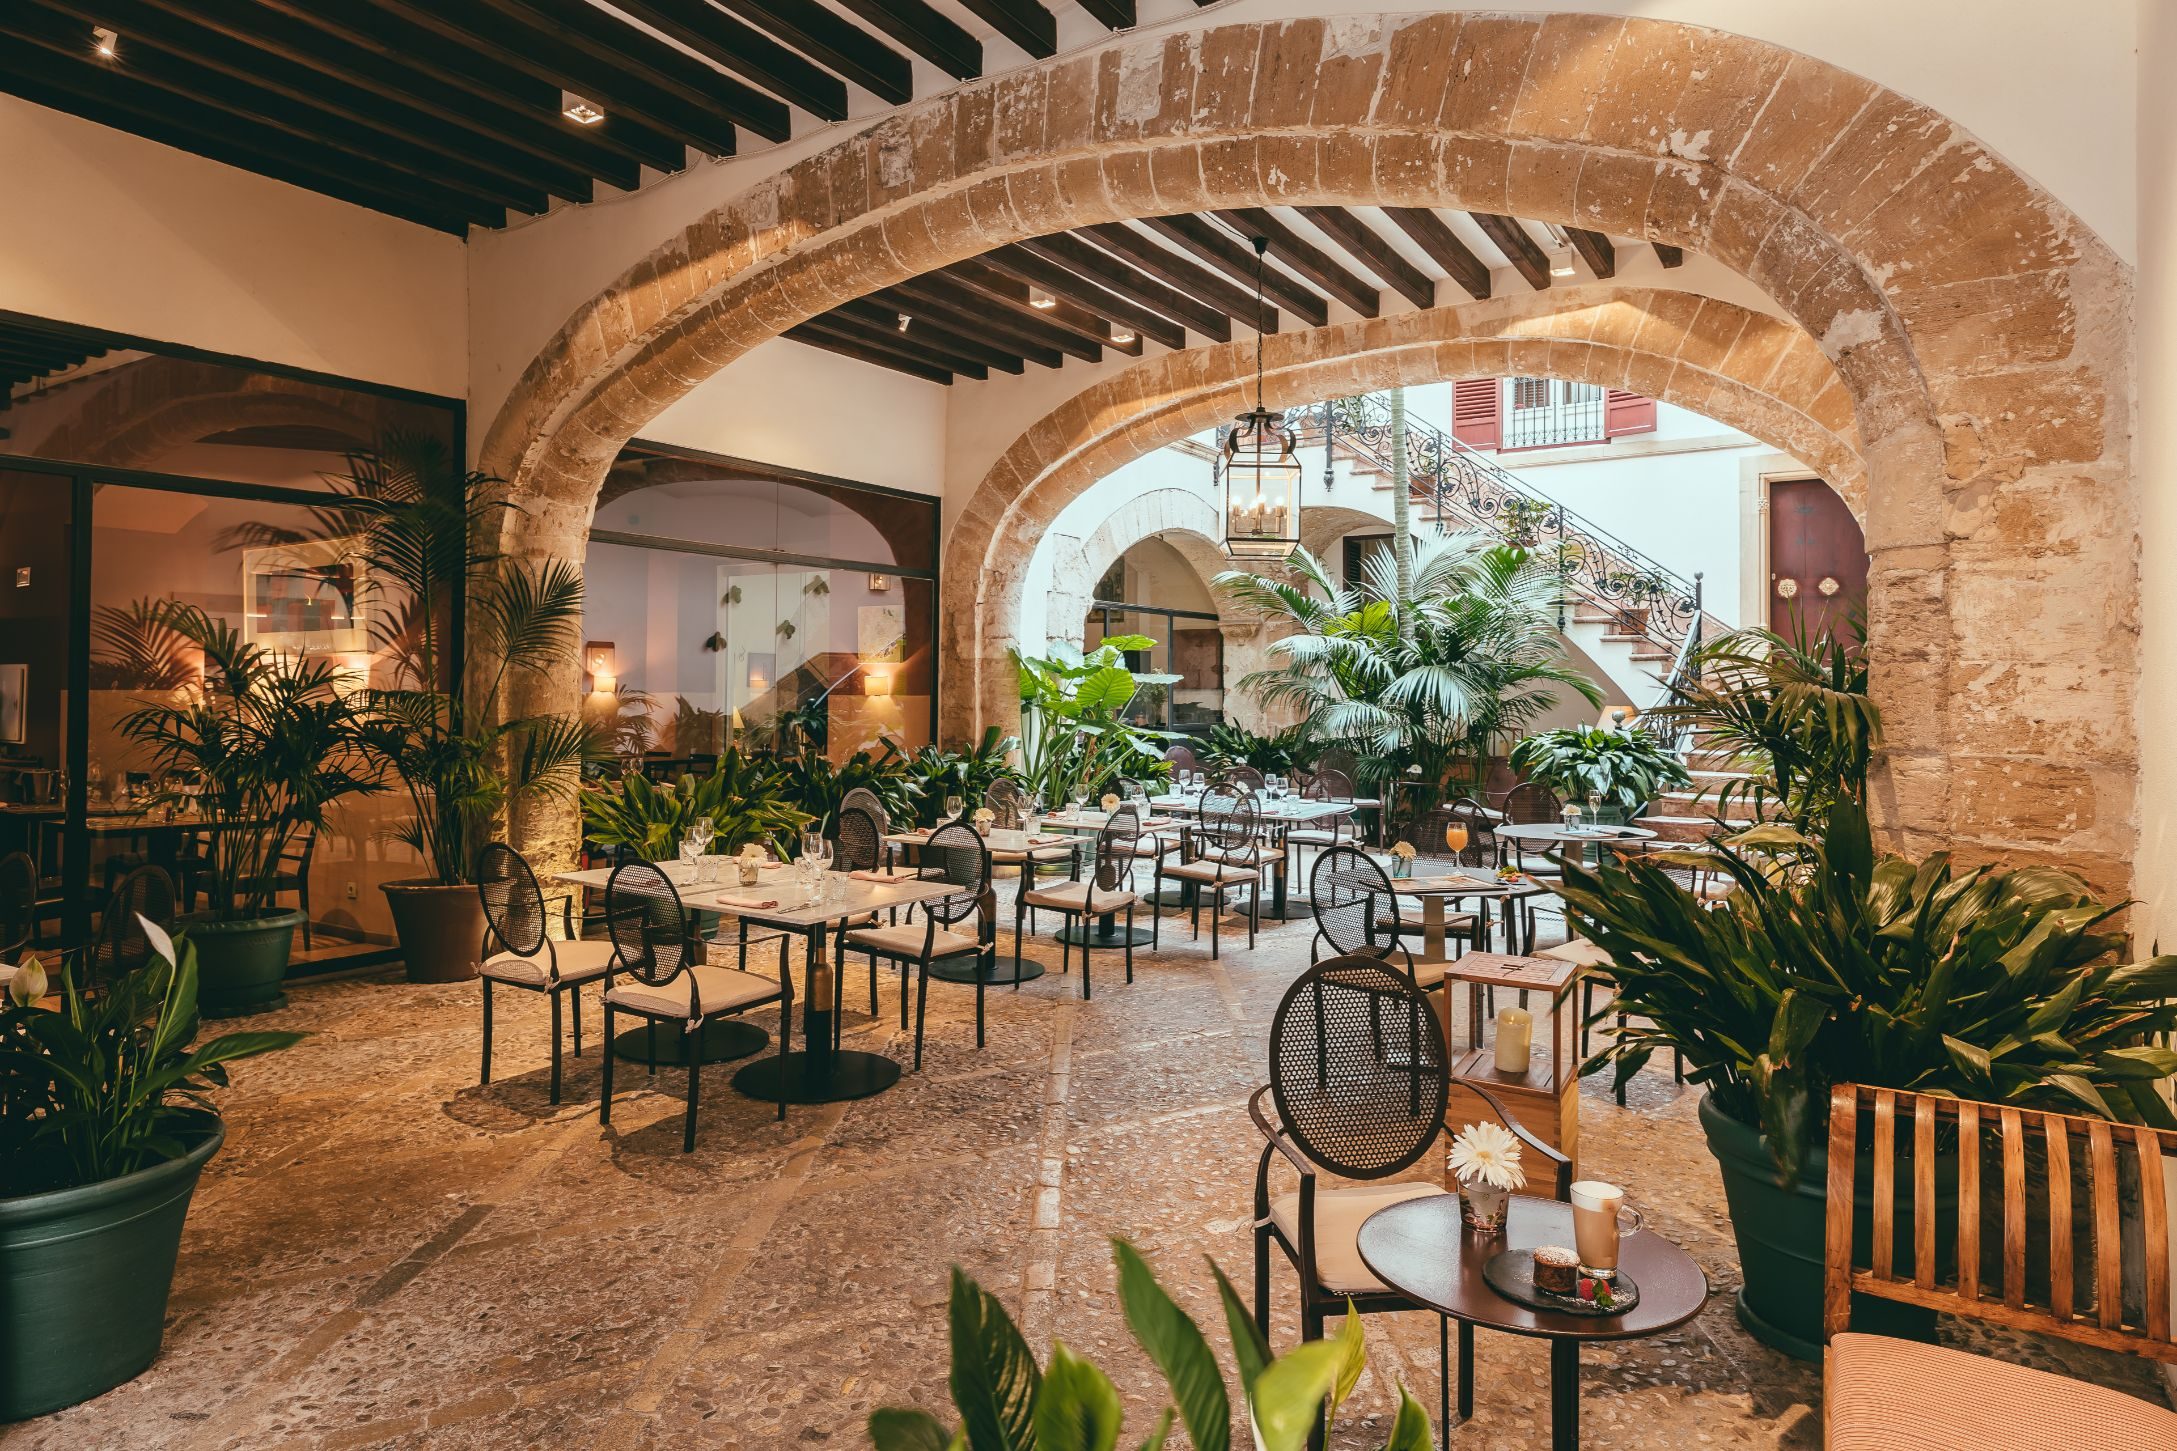 Patio at Boutique Hotel Can Cera in Palma